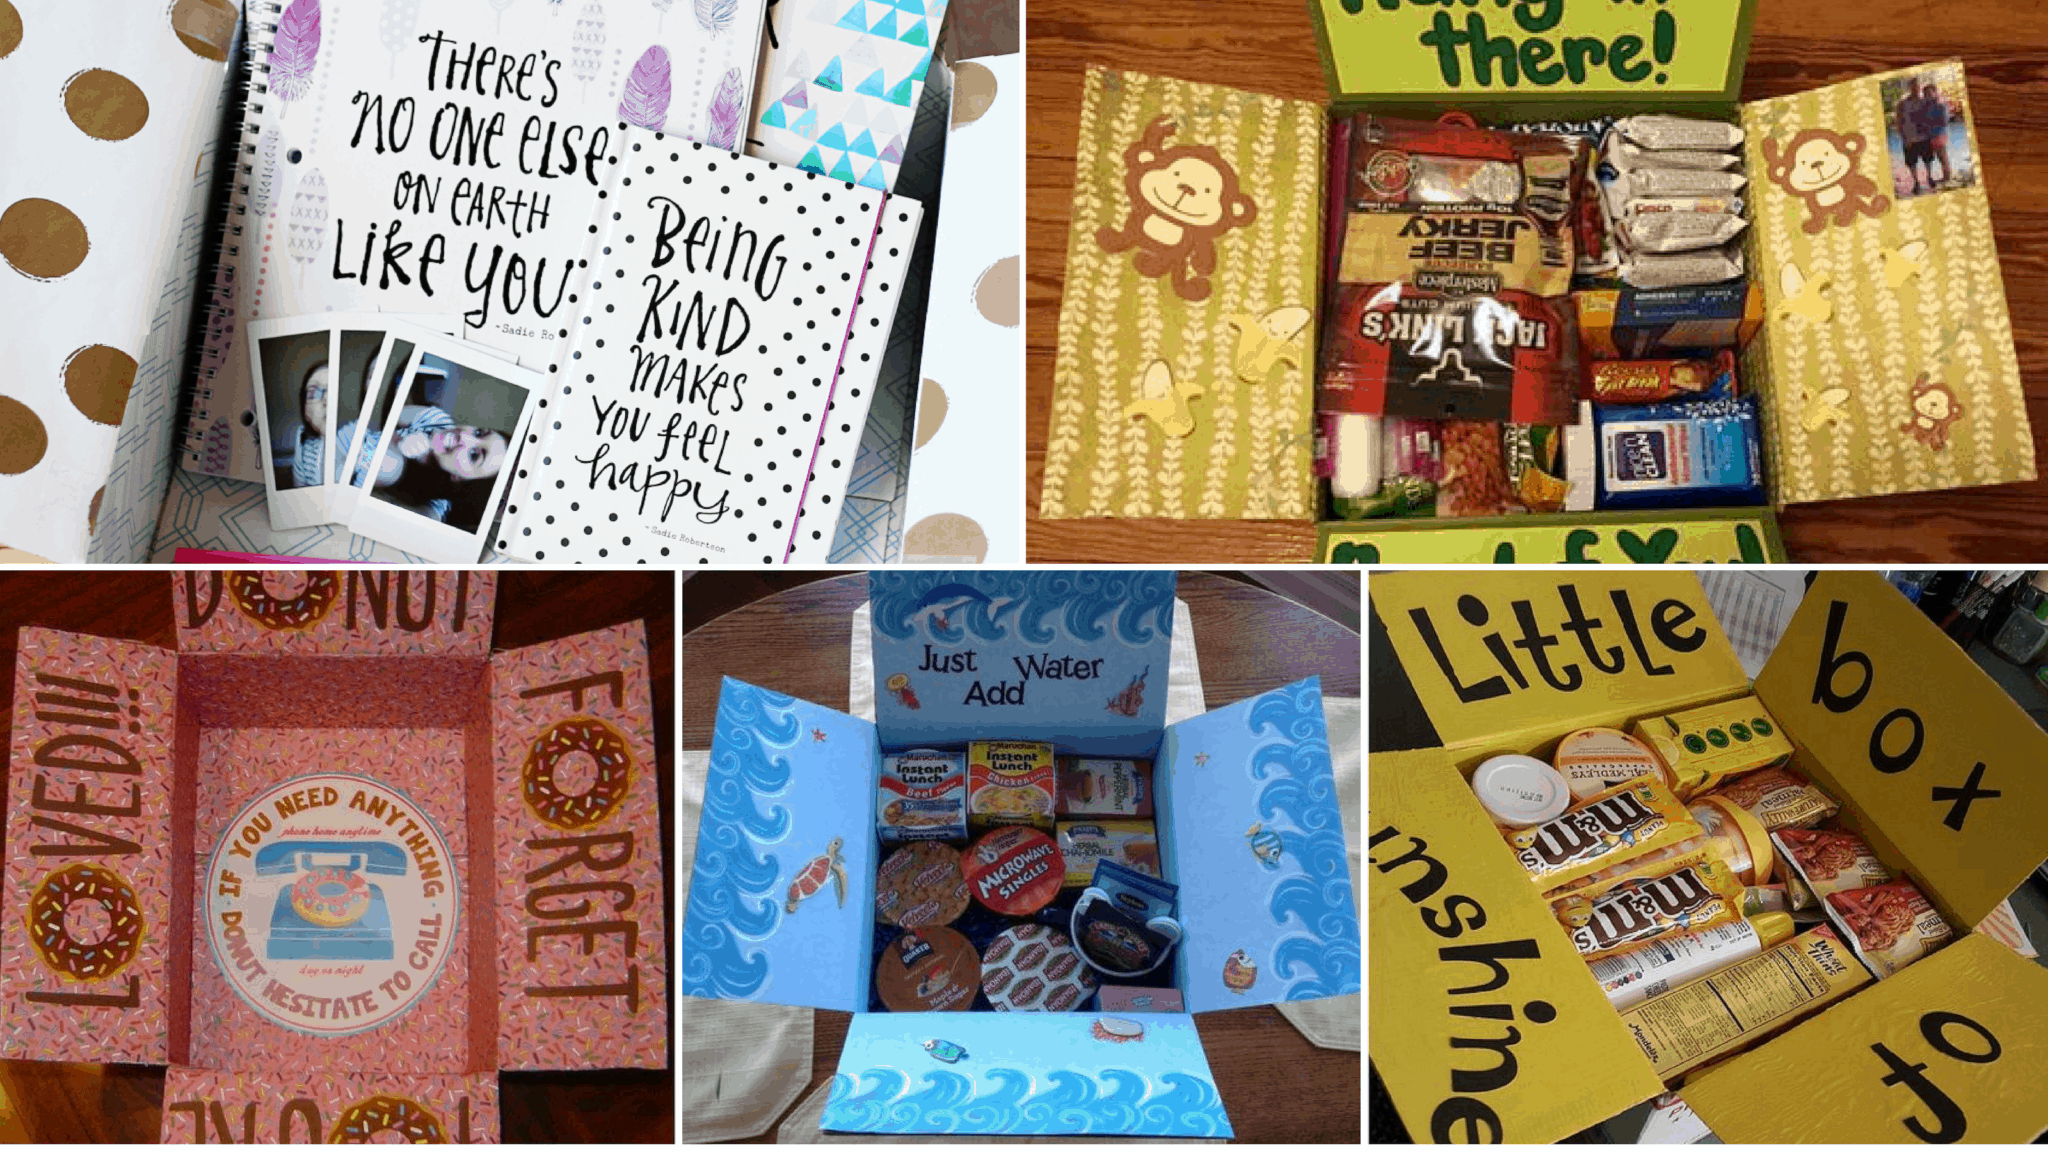 22 Genius Friend Care Package Ideas Guaranteed To Make Them Smile - By  Sophia Lee